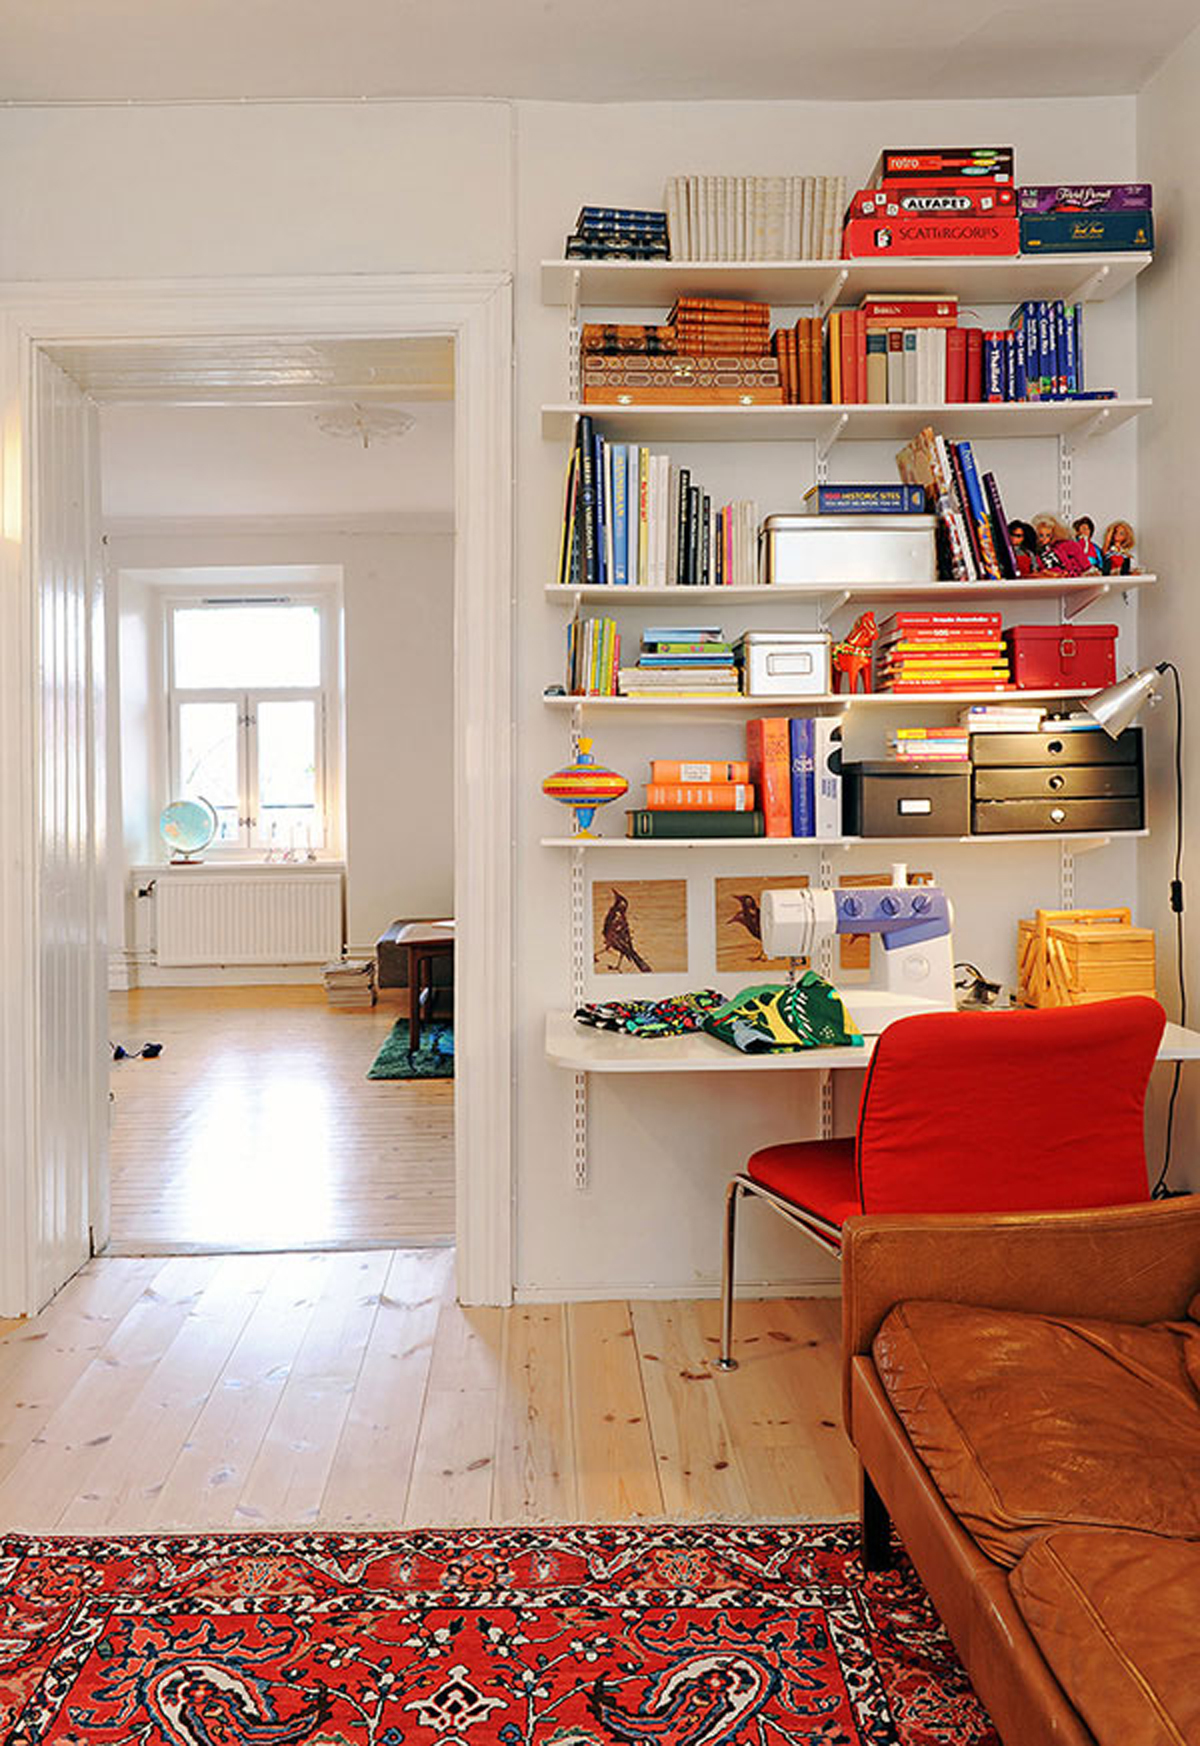 Three rooms apartment diverse with homey interior reading desk